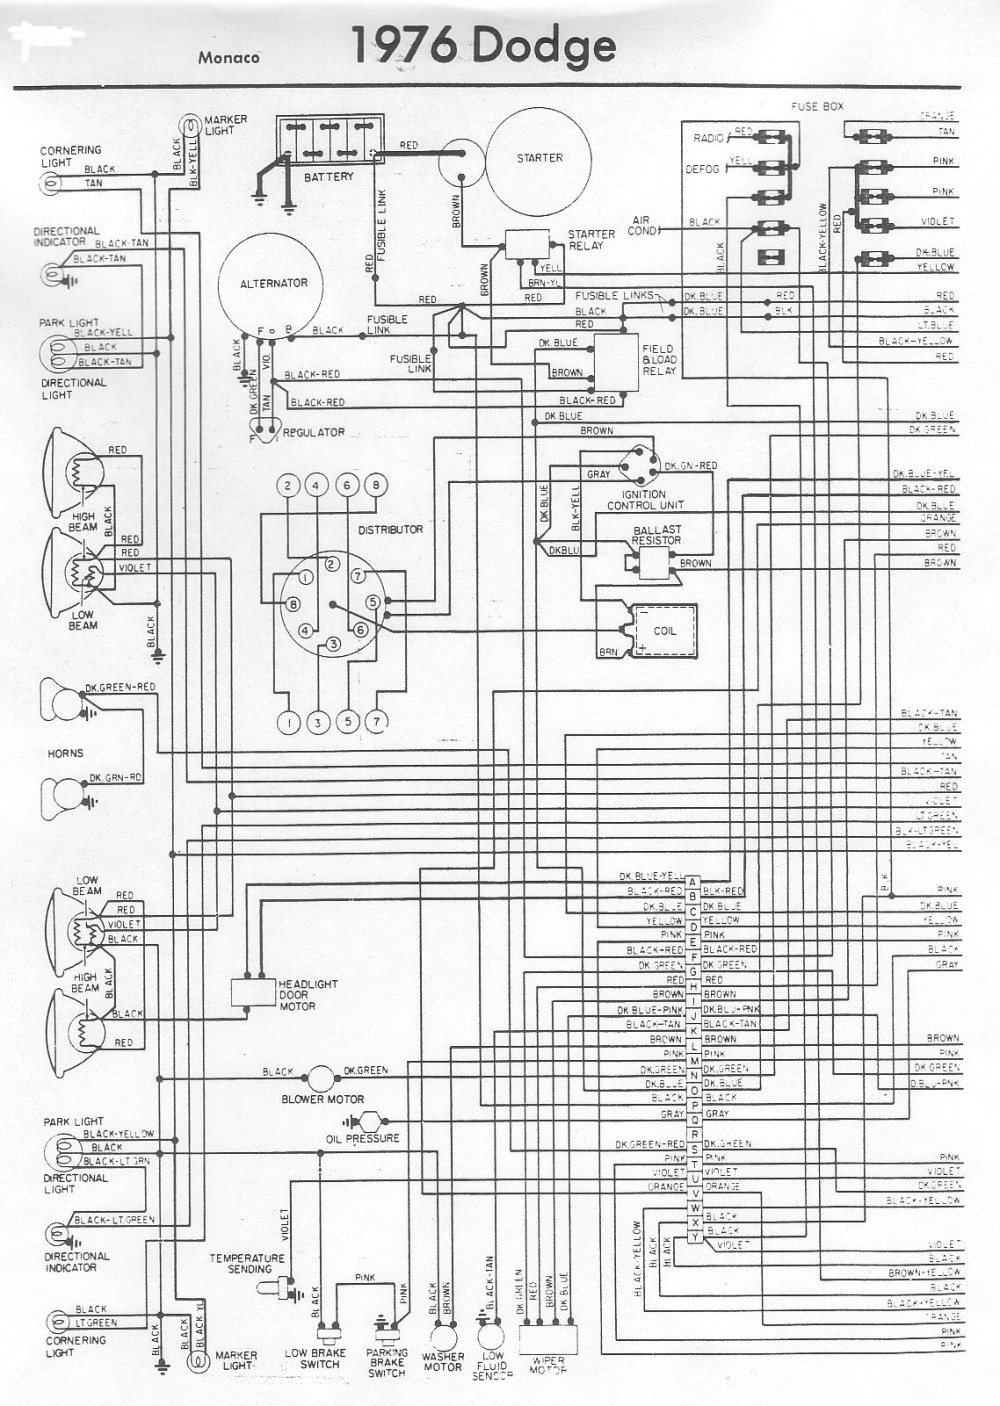 medium resolution of 1979 dodge wiring schematic wire management wiring diagram 1979 dodge wiring diagram wire management